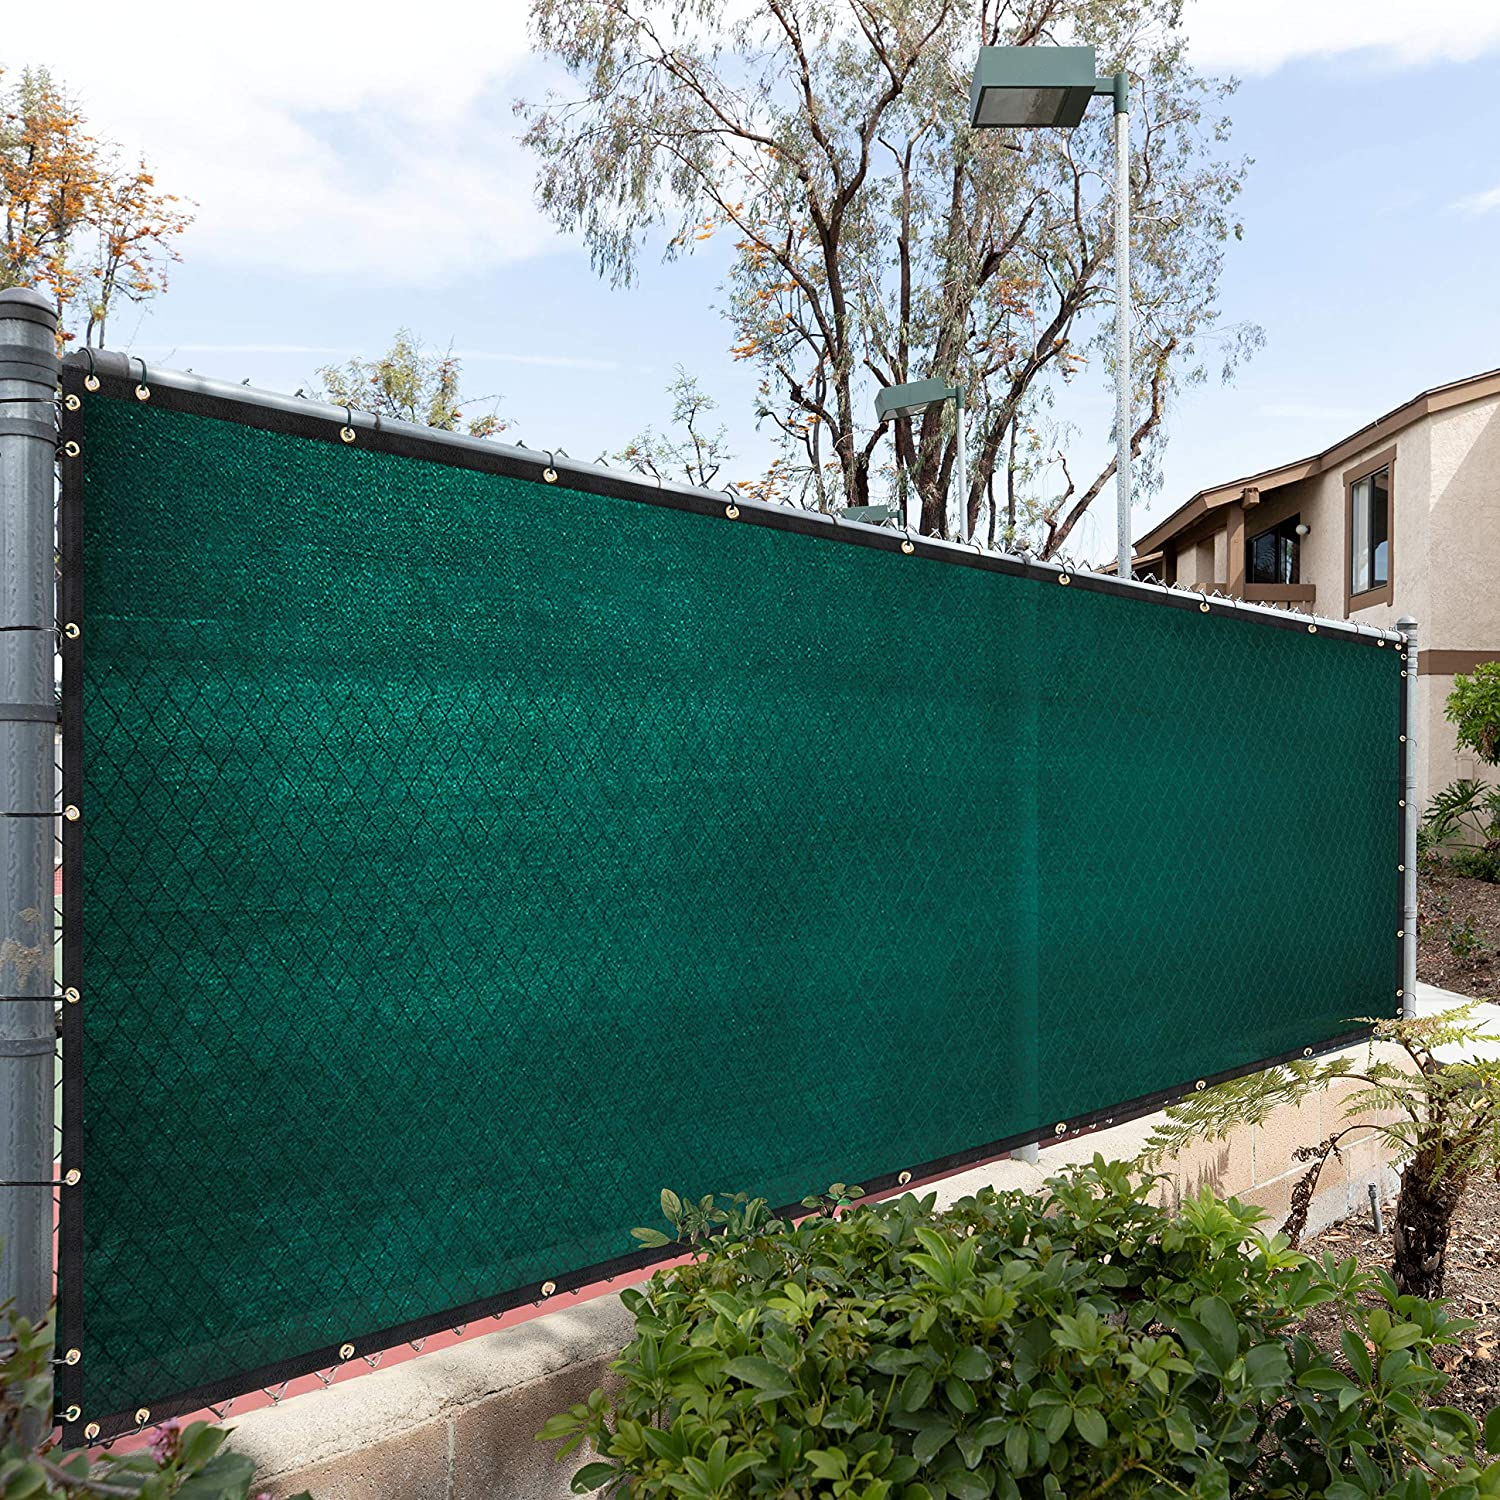 Royal Shade 6' x 25' Green Fence Privacy Screen Windscreen Cover Netting Mesh Fabric Cloth - Cable Zip Ties Included - WE Custom Make Size